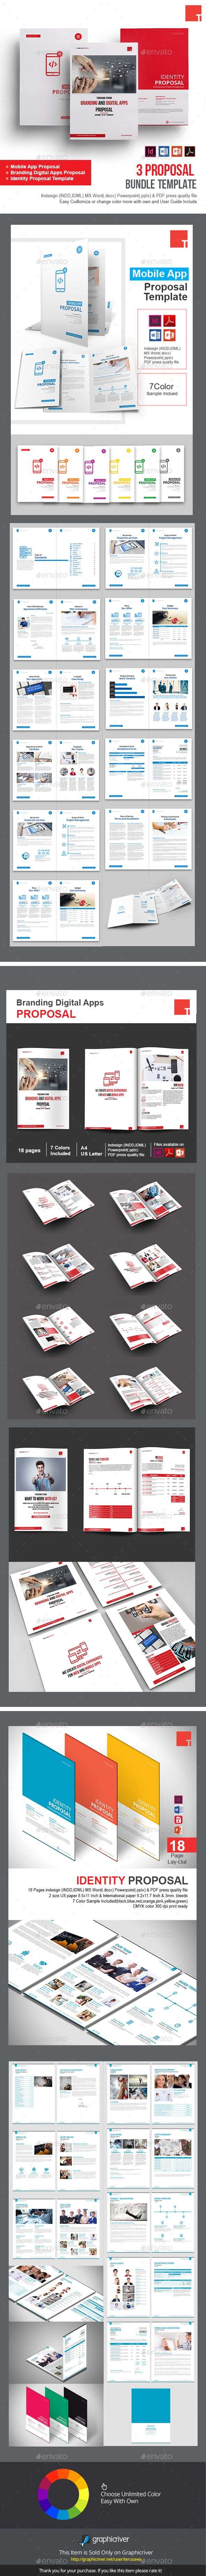 3 Proposal #Bundle Template - #Proposals & #Invoices Stationery Download here:  https://graphicriver.net/item/3-proposal-bundle-template/20474450?ref=alena994